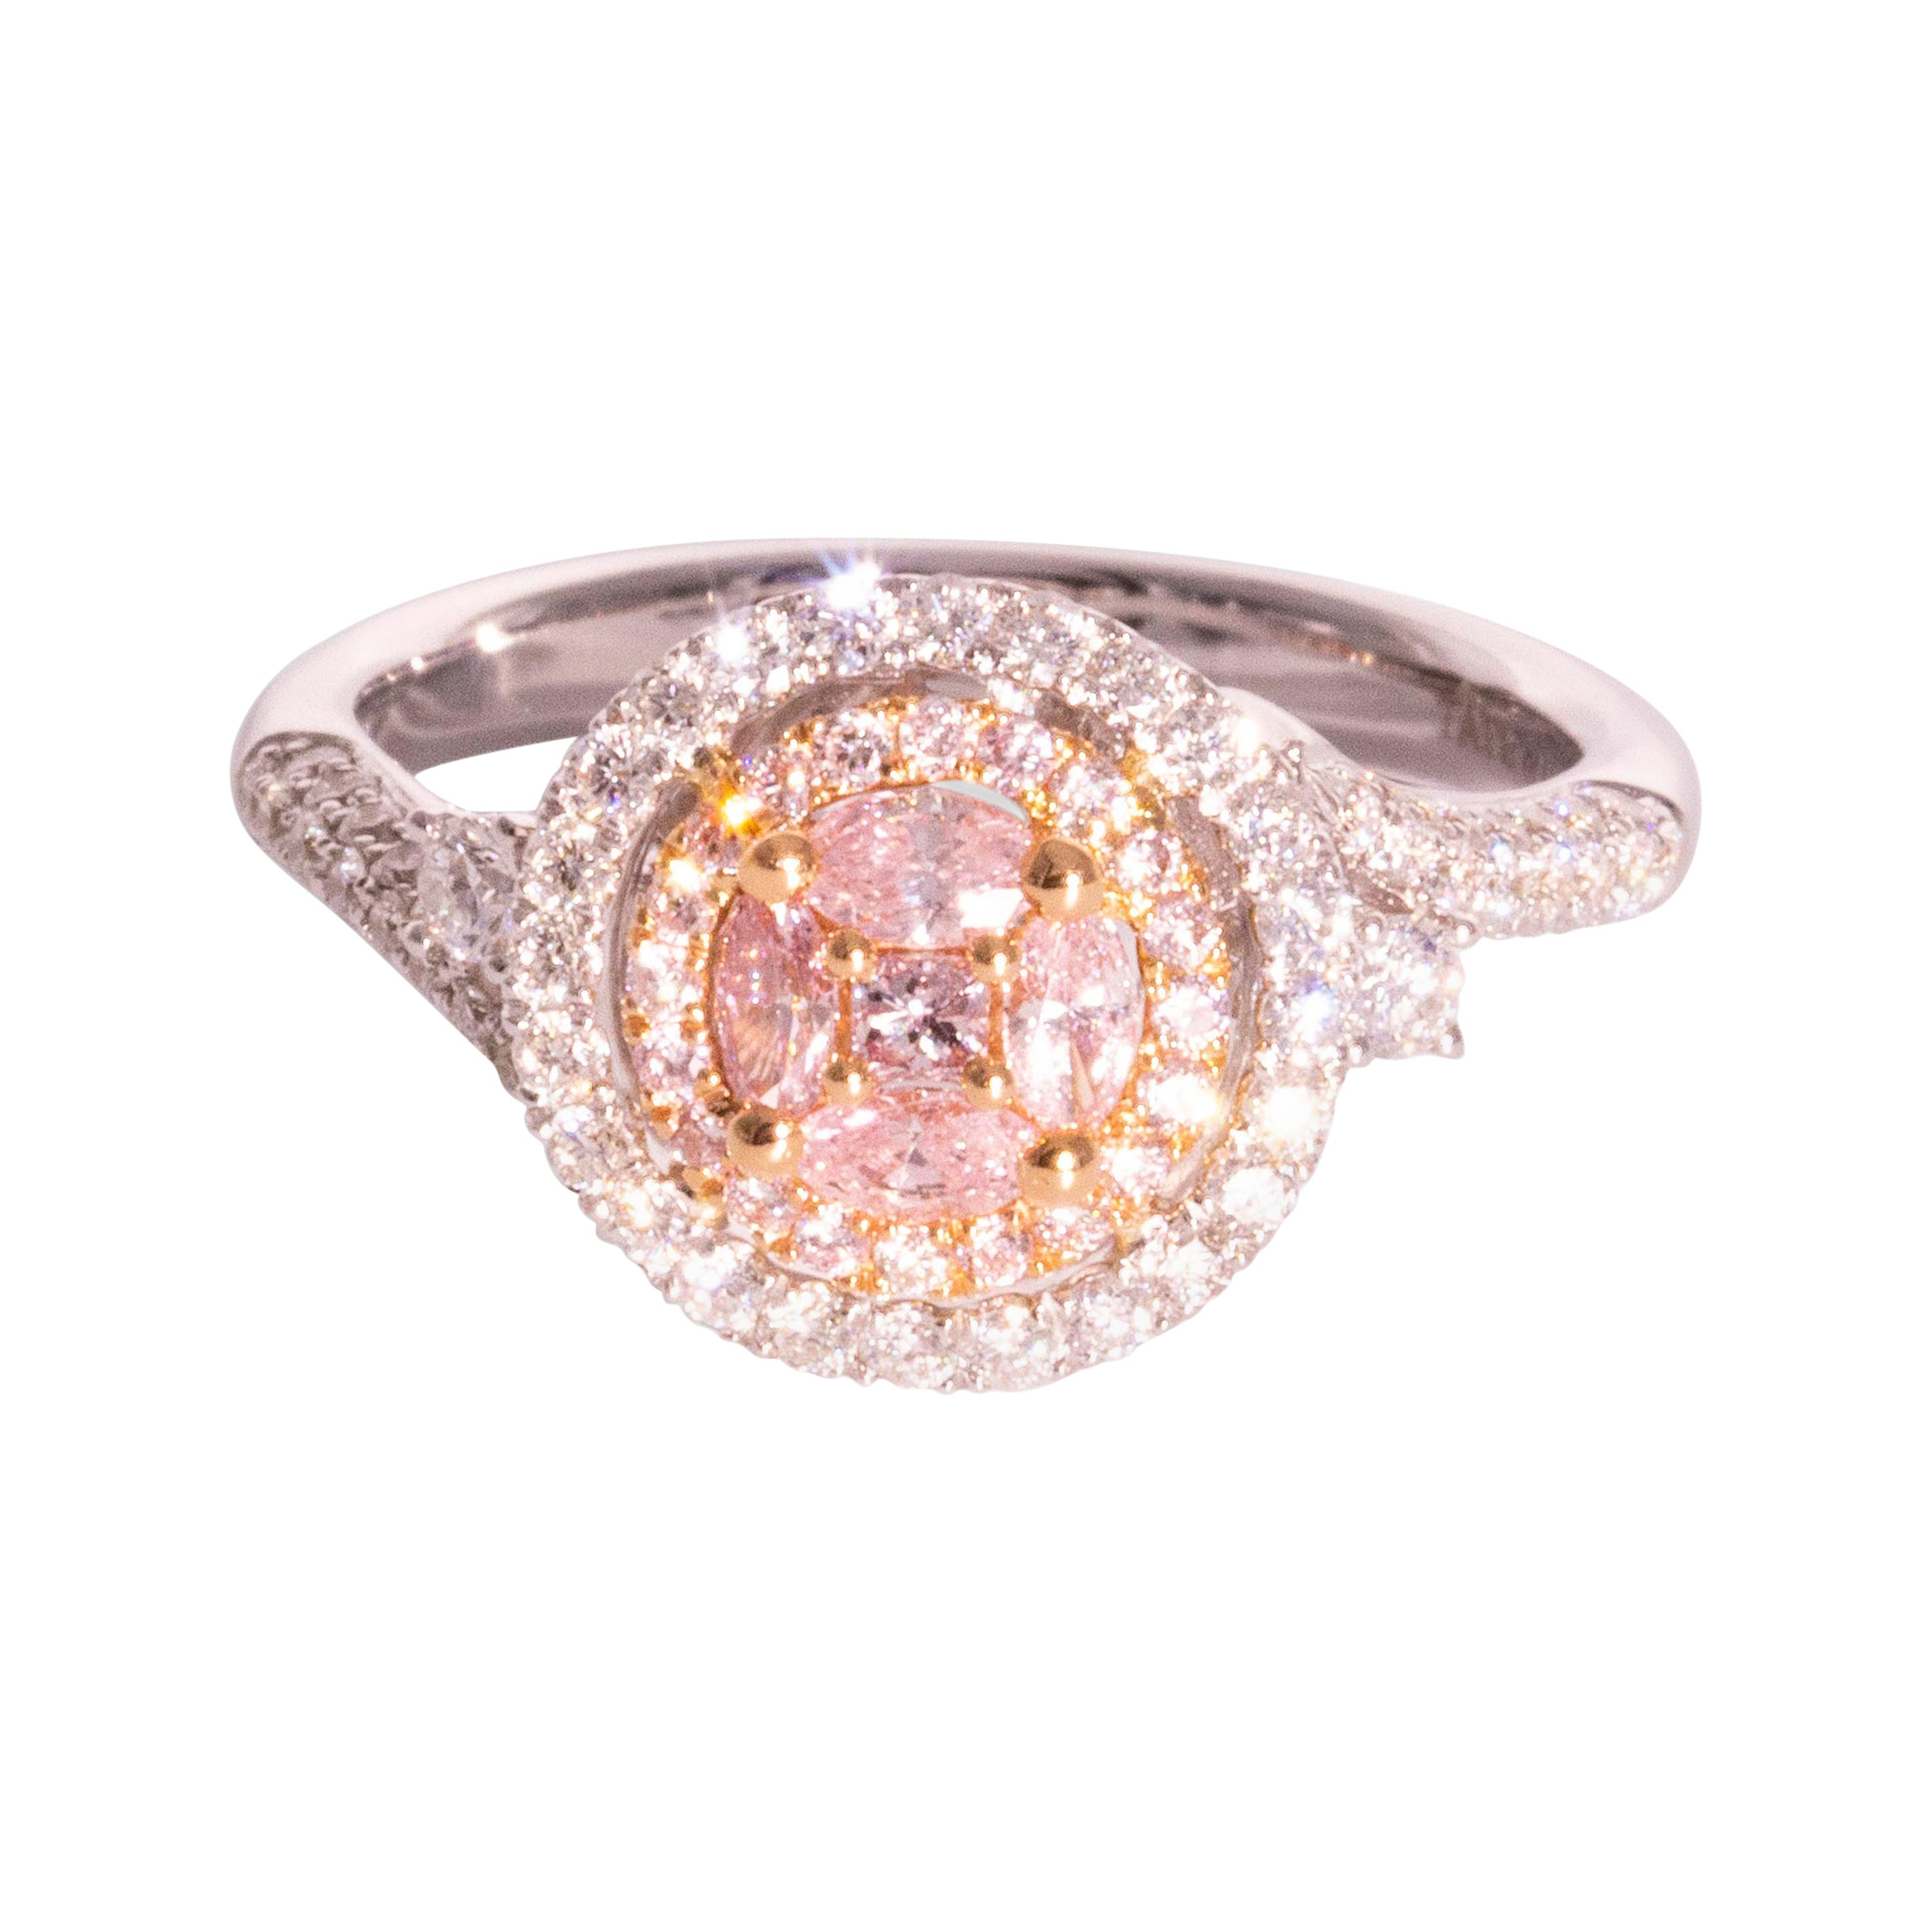 Natural Pink Diamond and White Diamond 18 Carat White and Rose Gold Halo Ring